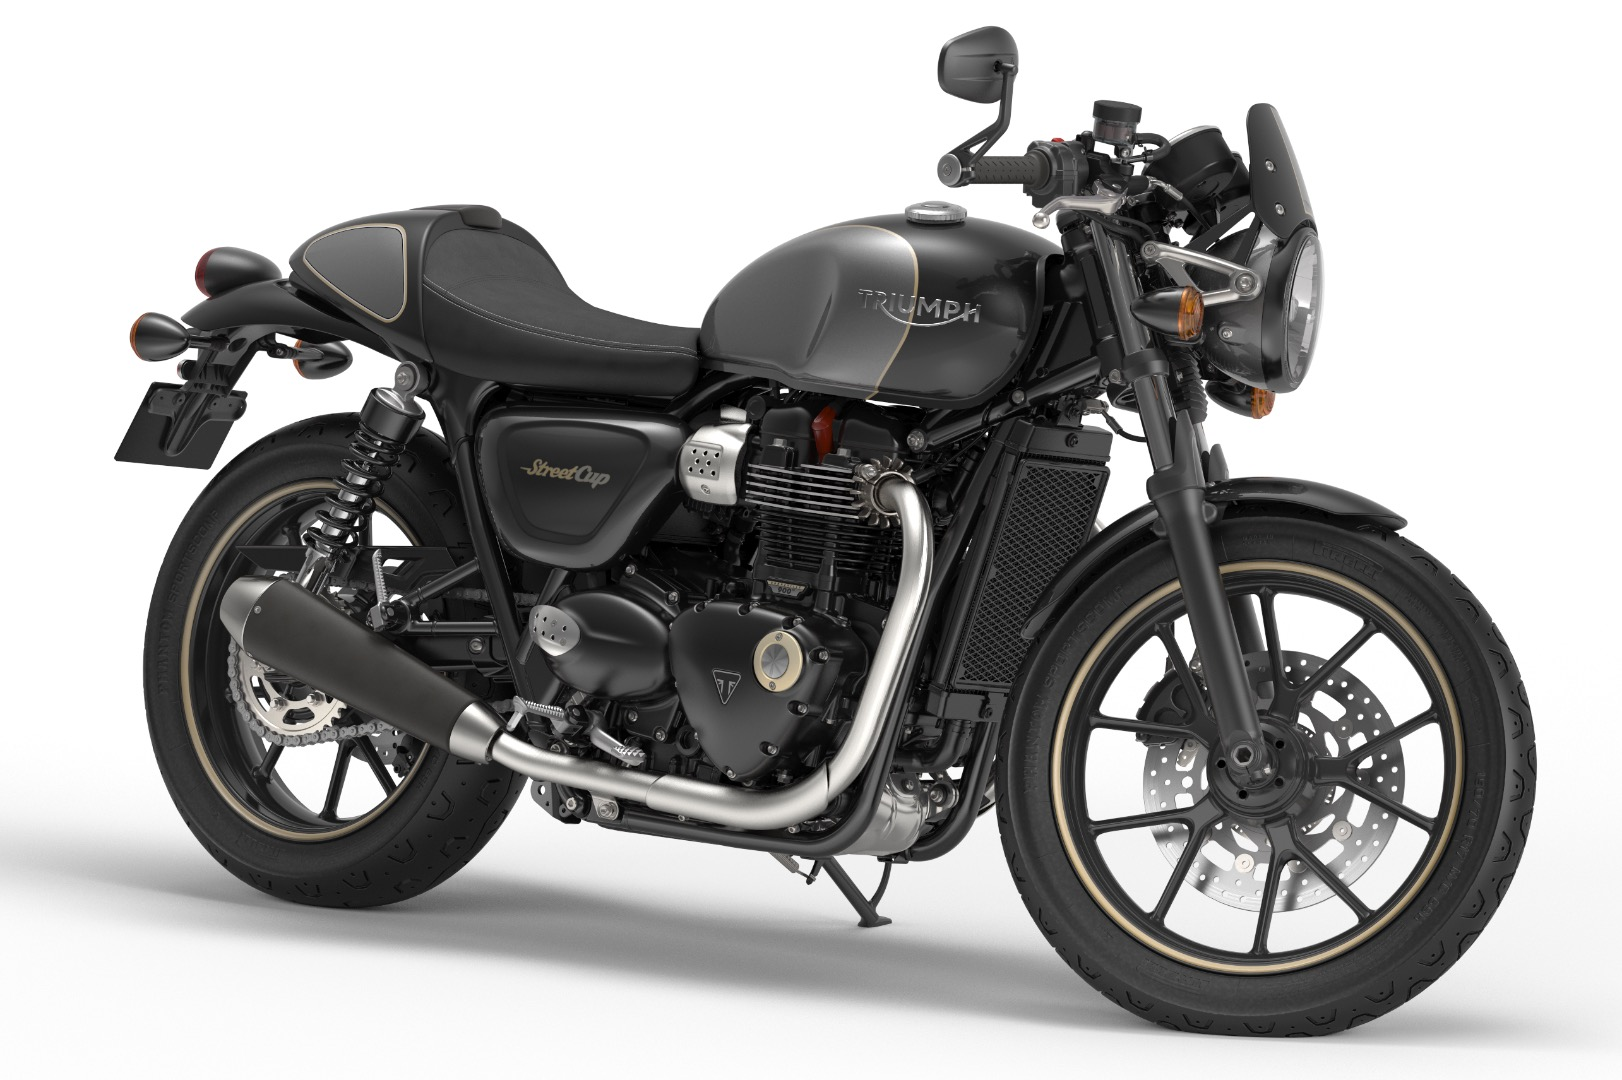 all new triumph bonneville bobber, t100, street cup - behind the moto